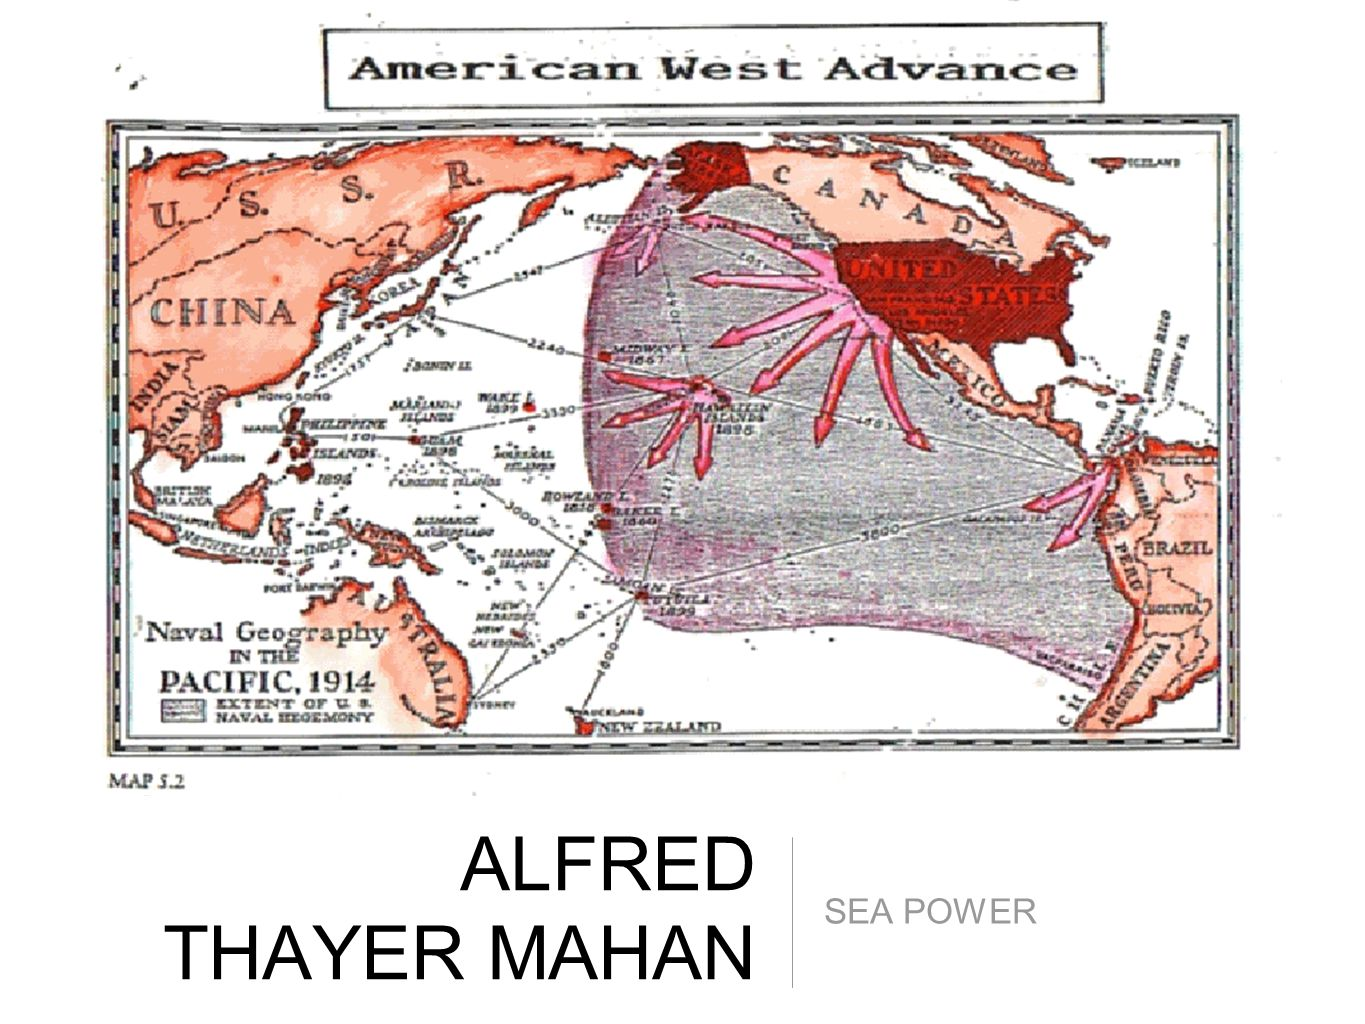 ALFRED THAYER MAHAN SEA POWER